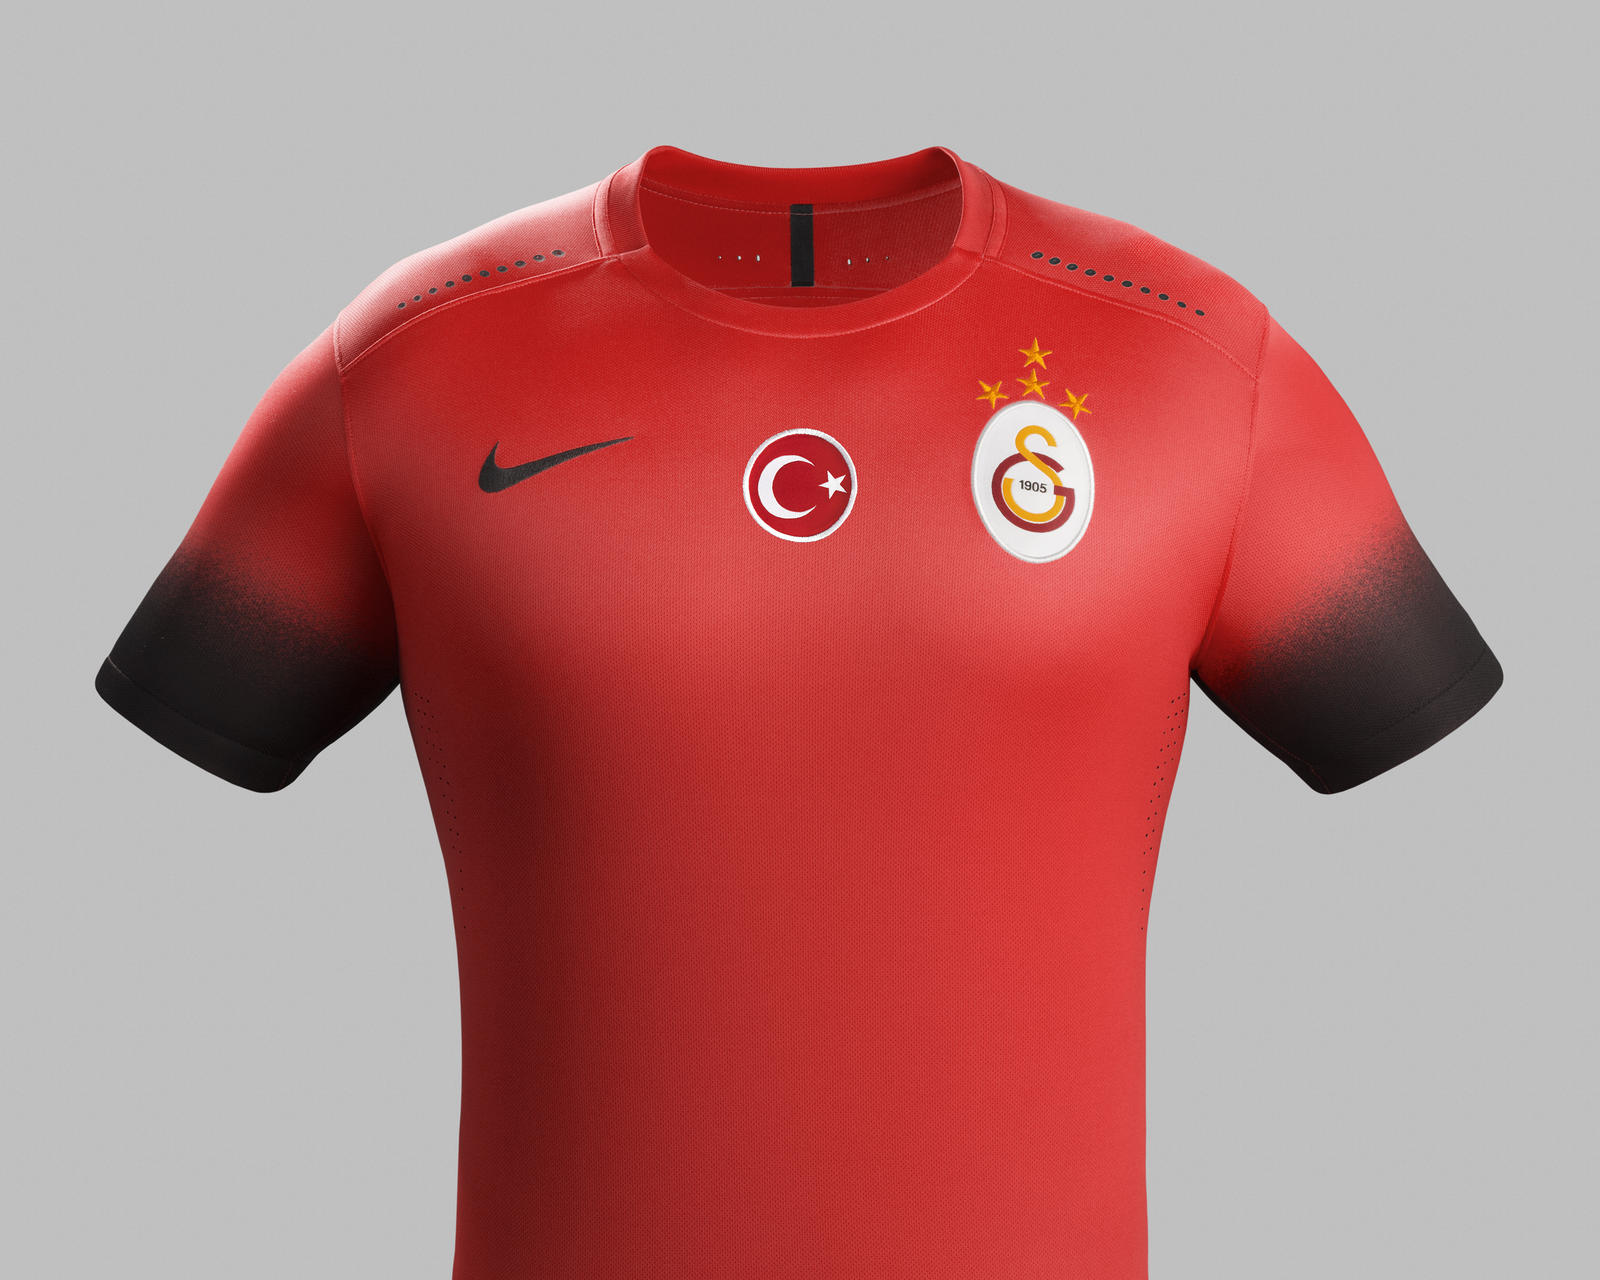 Nike_Galatasaray_Night_rising_Chrest_Front_native_1600.jpg?1442351659